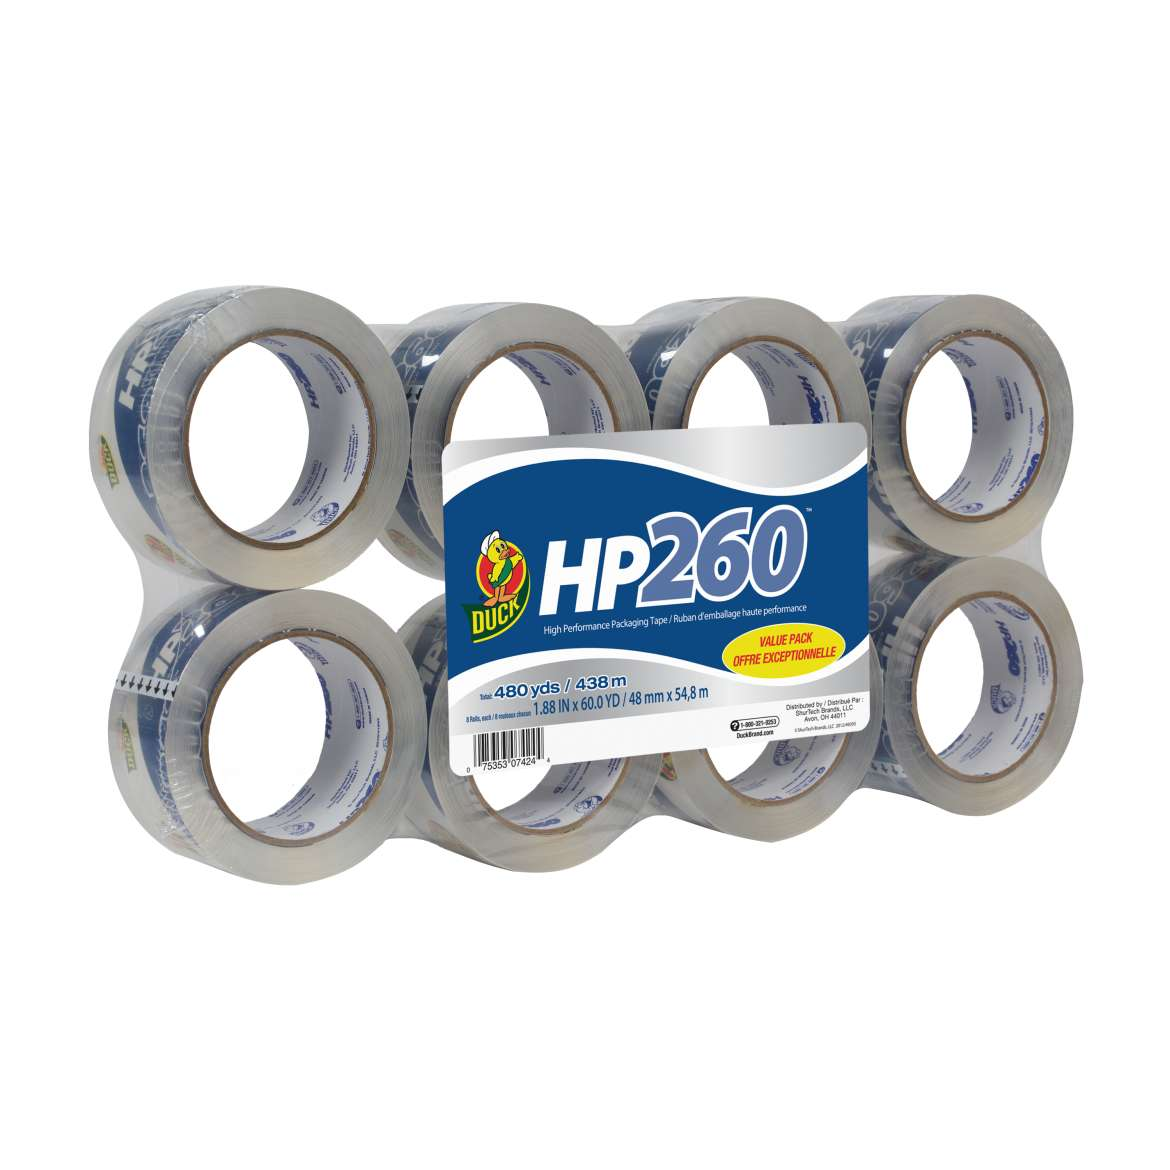 HP260™ Packaging Tape - Clear, 8 pk, 1.88 in. x 60 yd. Image